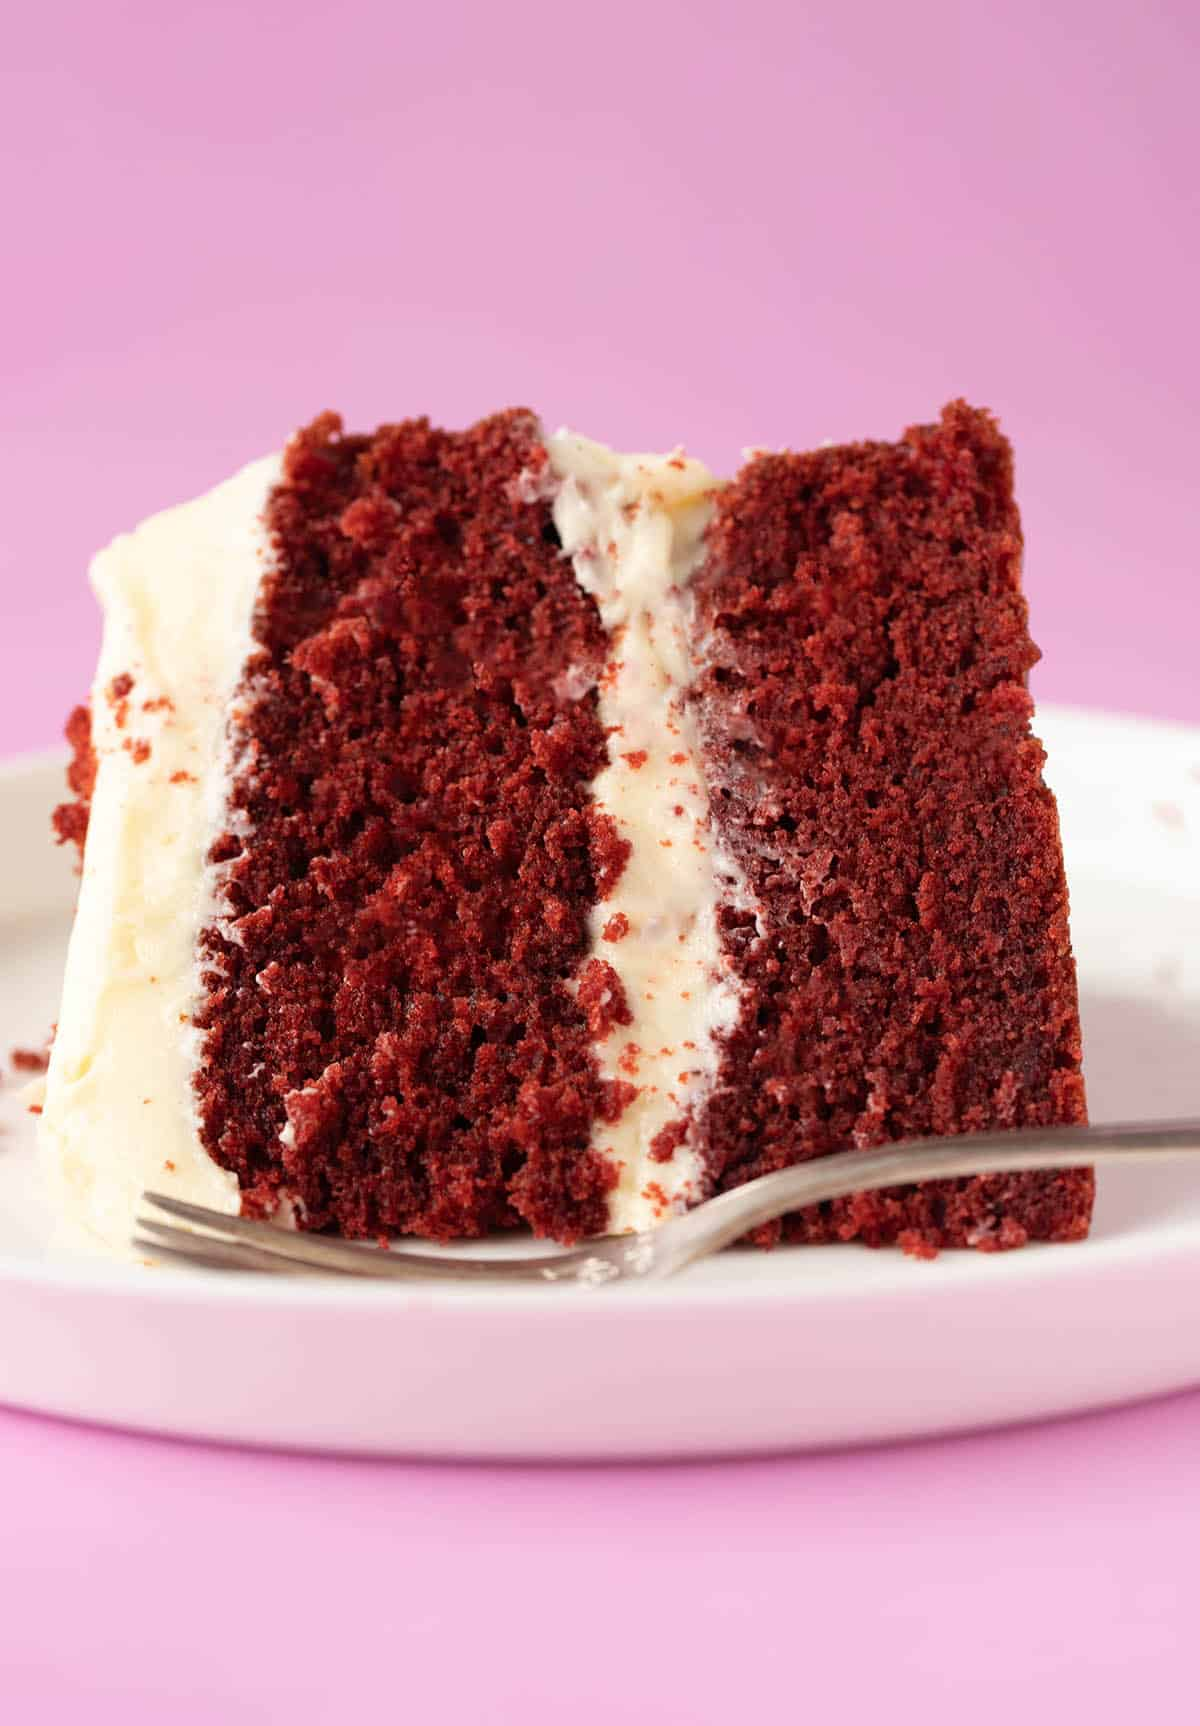 A close up of a slice of Red Velvet Cake on a white plate